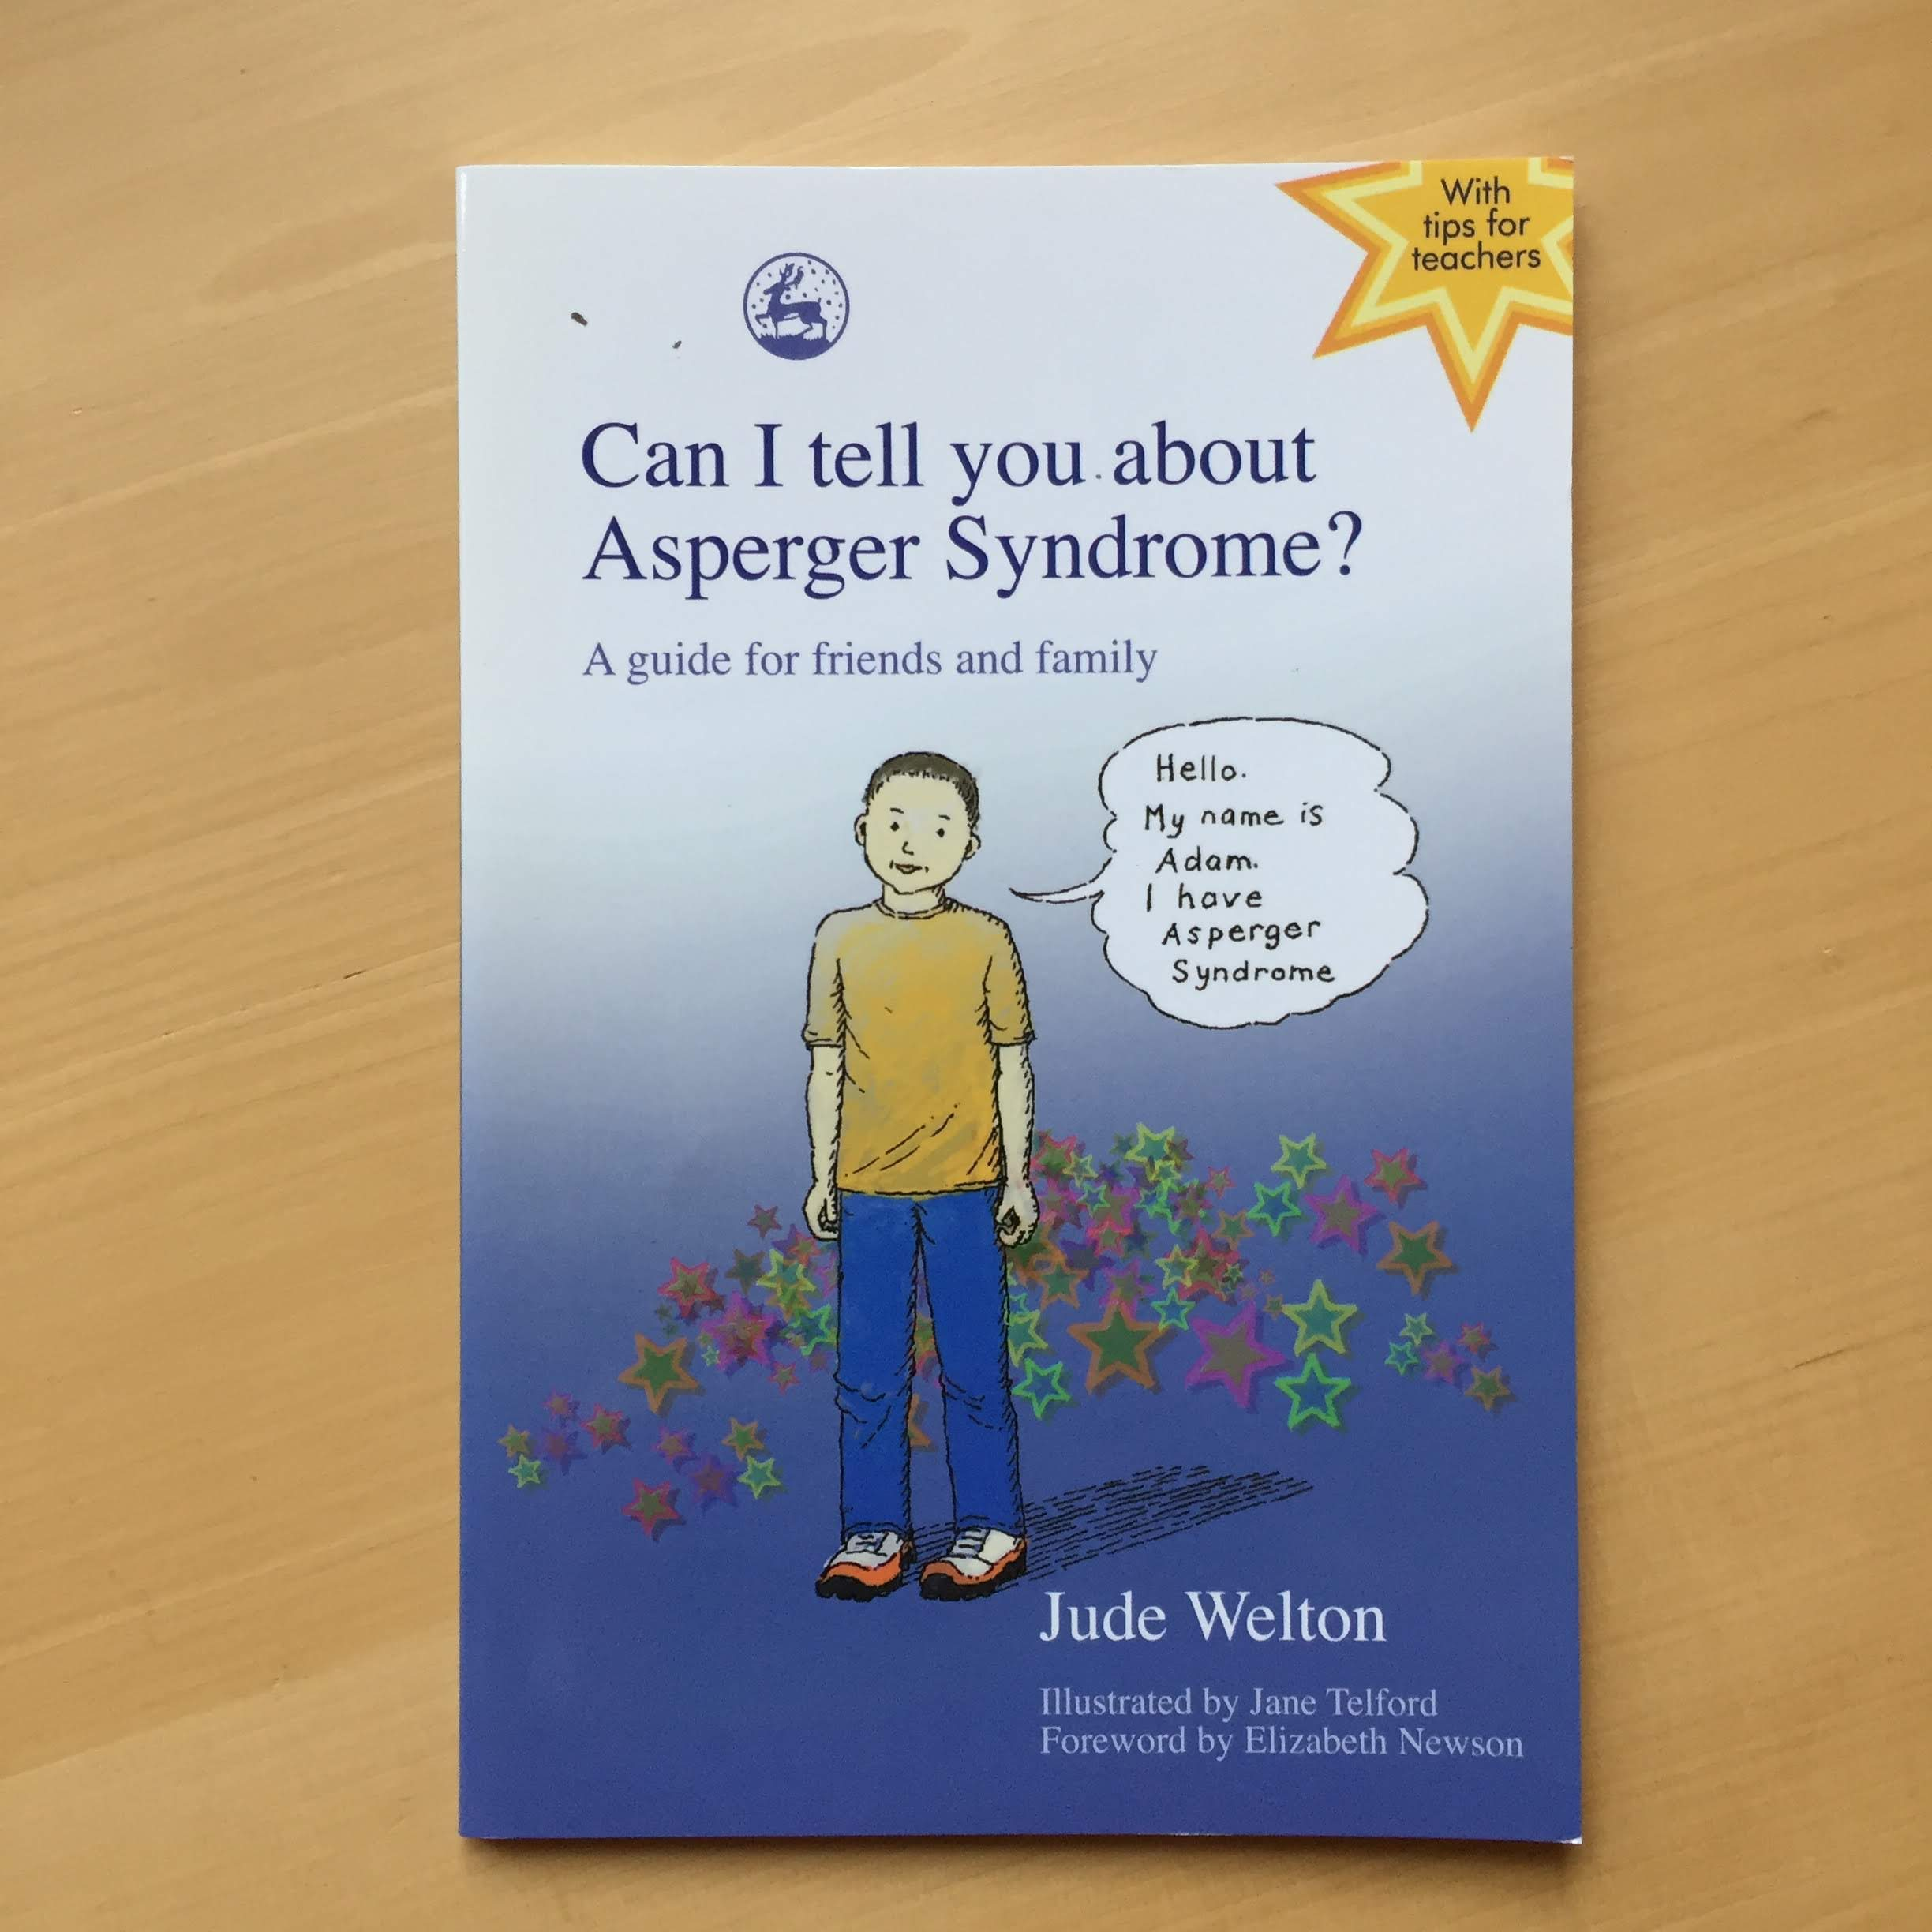 Can I tell you about Aspergers Syndrome? af Jude Welton 25 kr.